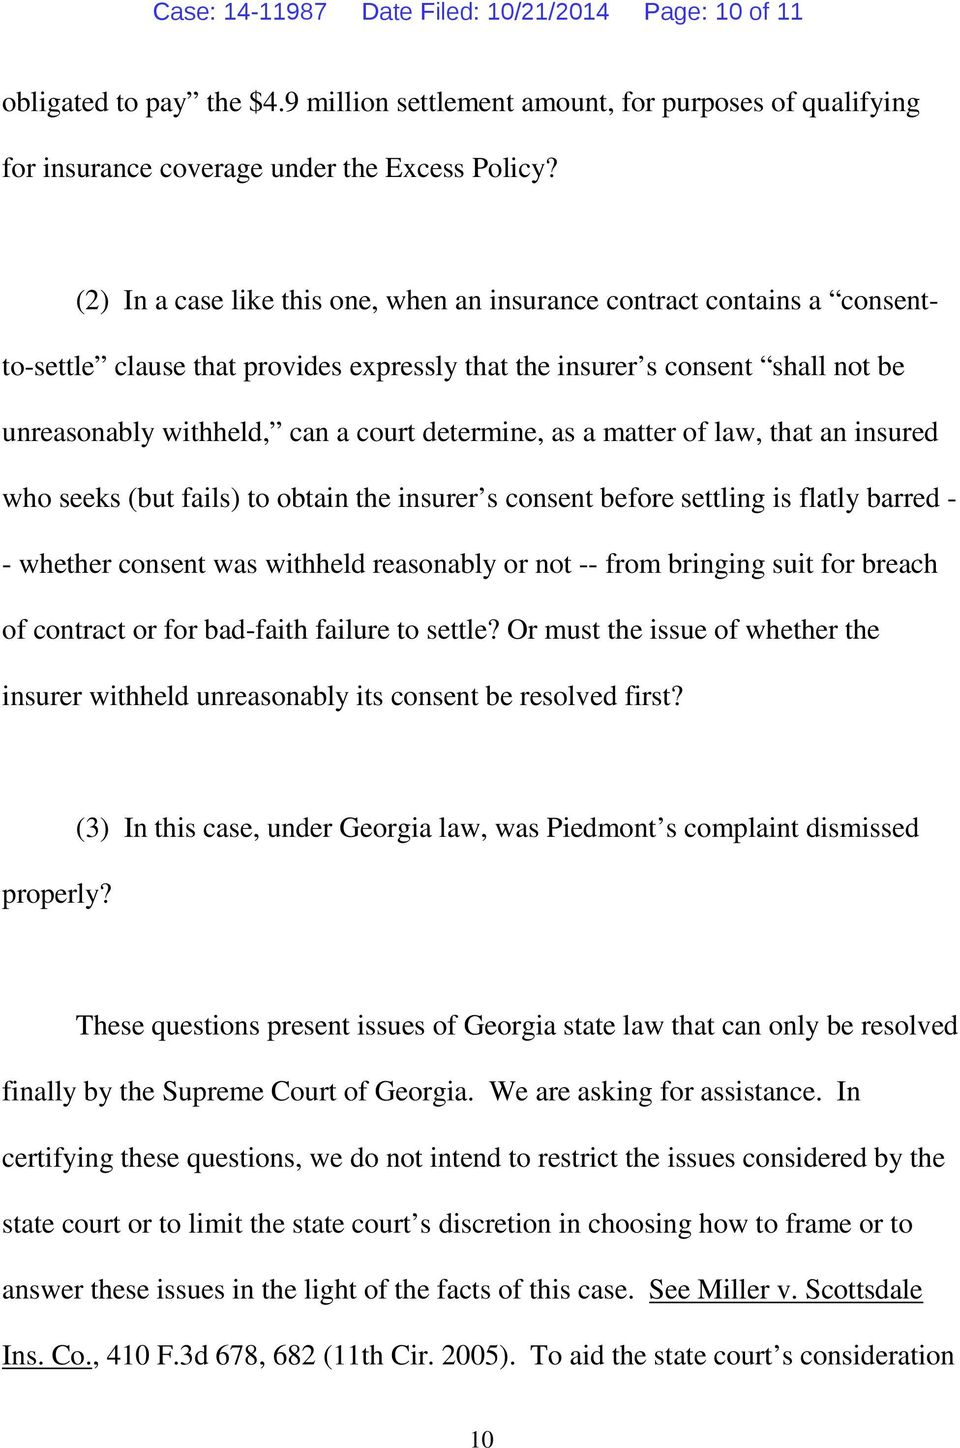 determine, as a matter of law, that an insured who seeks (but fails) to obtain the insurer s consent before settling is flatly barred - - whether consent was withheld reasonably or not -- from